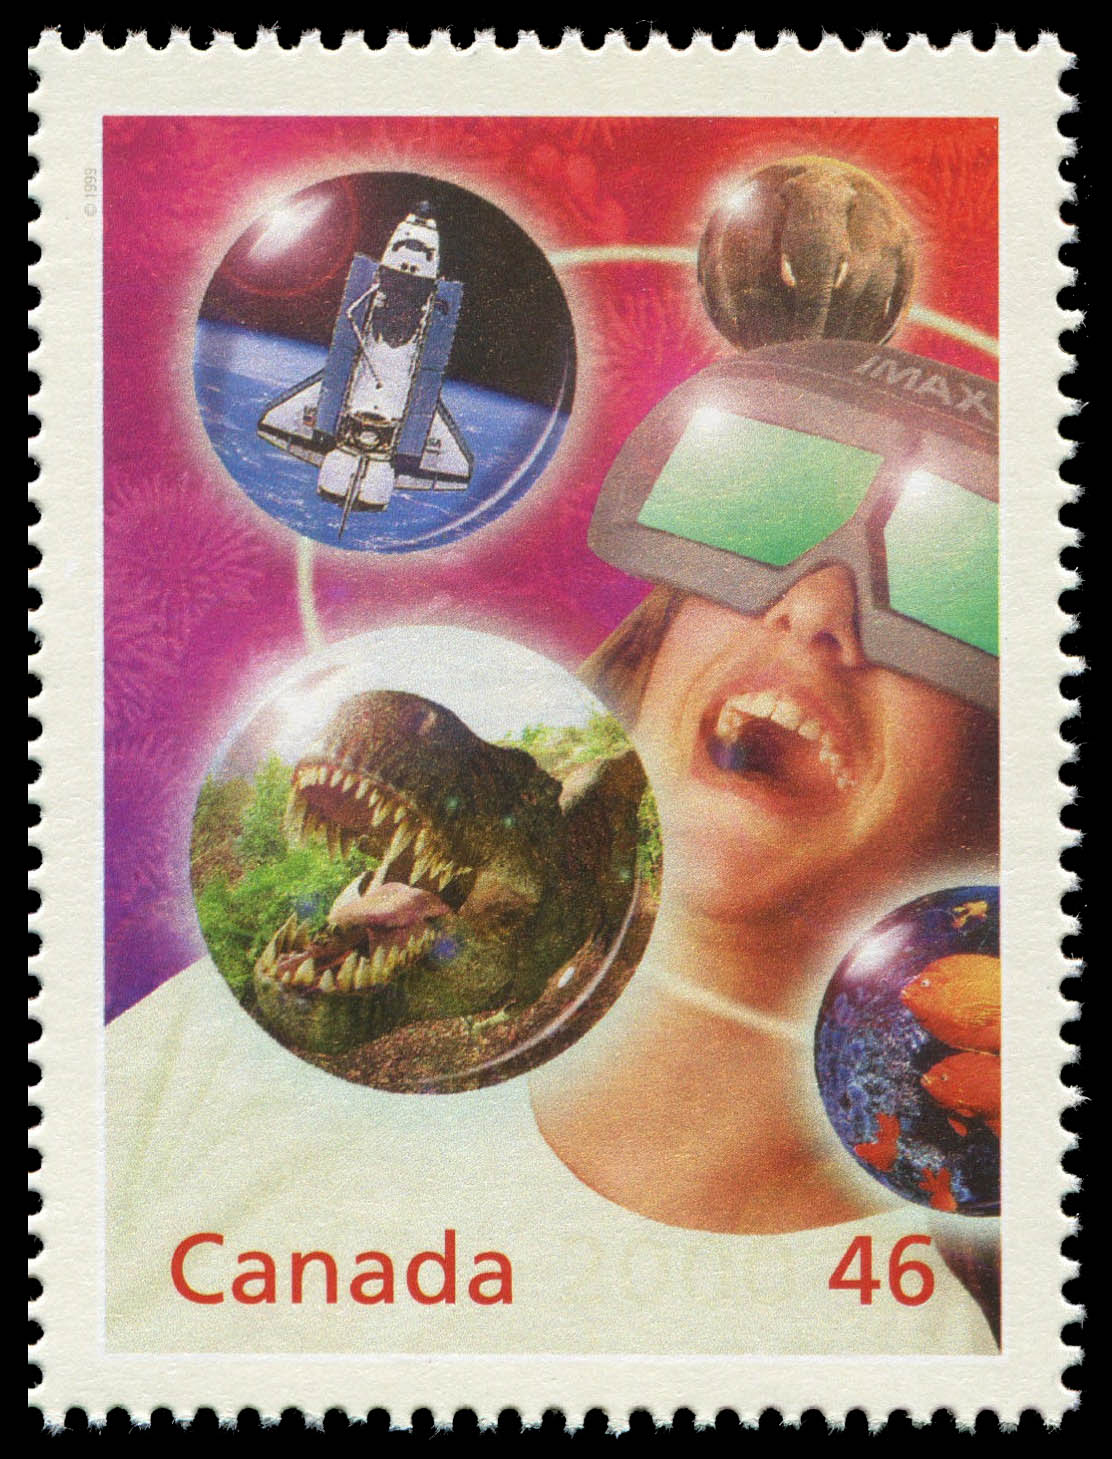 IMAX: A New Kind of Movie Canada Postage Stamp | The Millennium Collection, Media Technologies